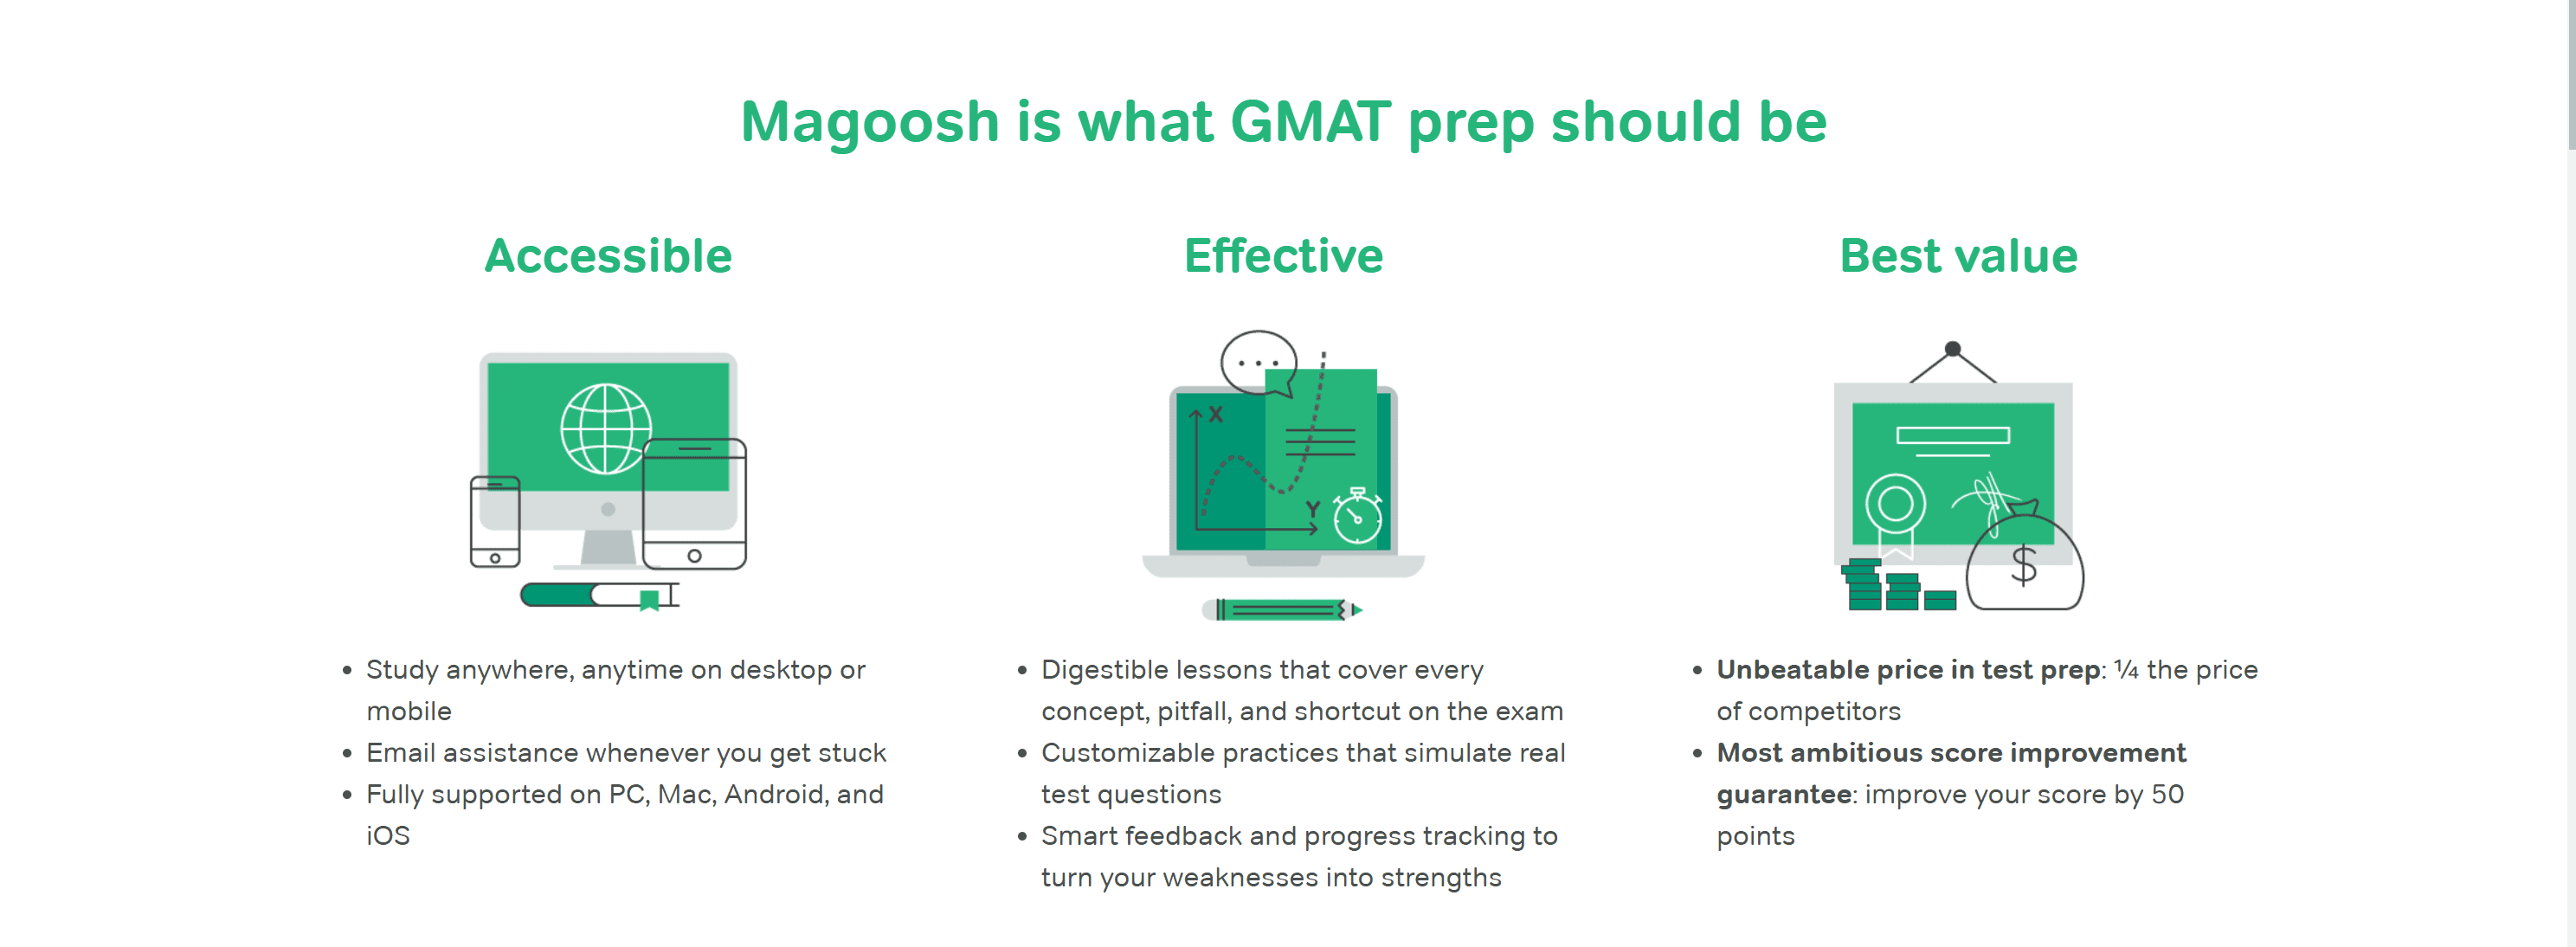 Buy  Online Test Prep Magoosh Deals Near Me